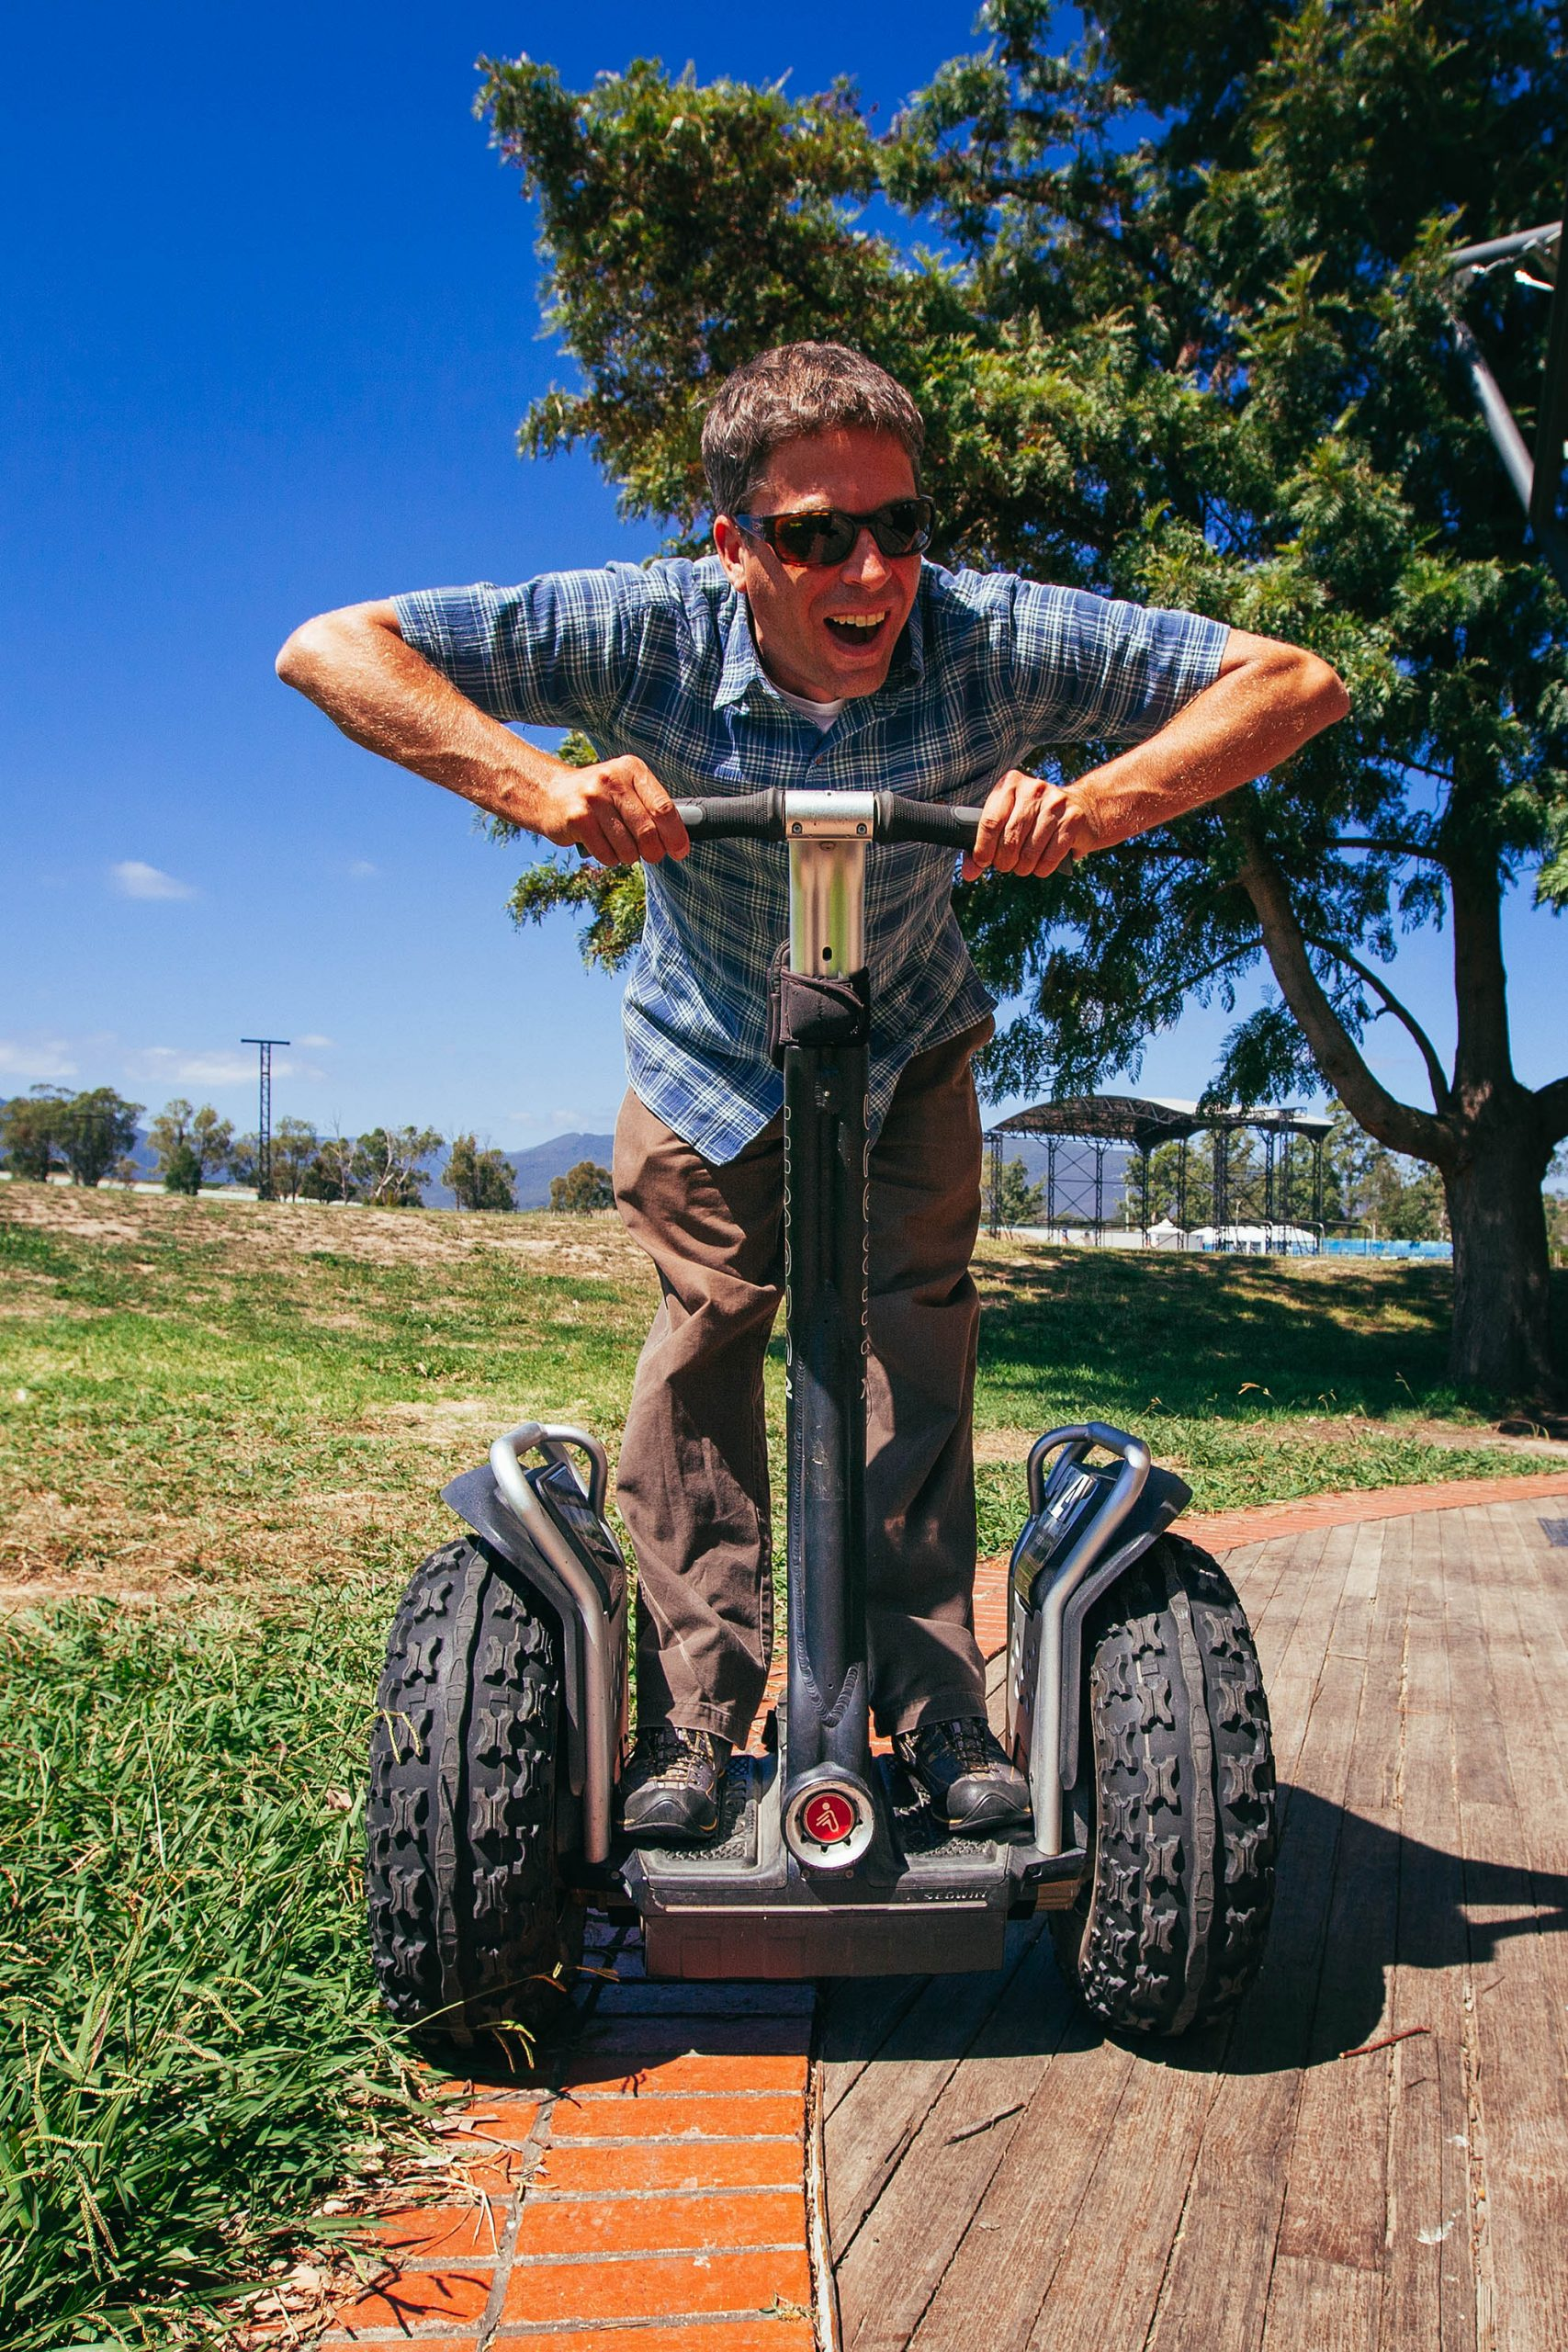 Segway lessons on assignment in Melbourne, Australia